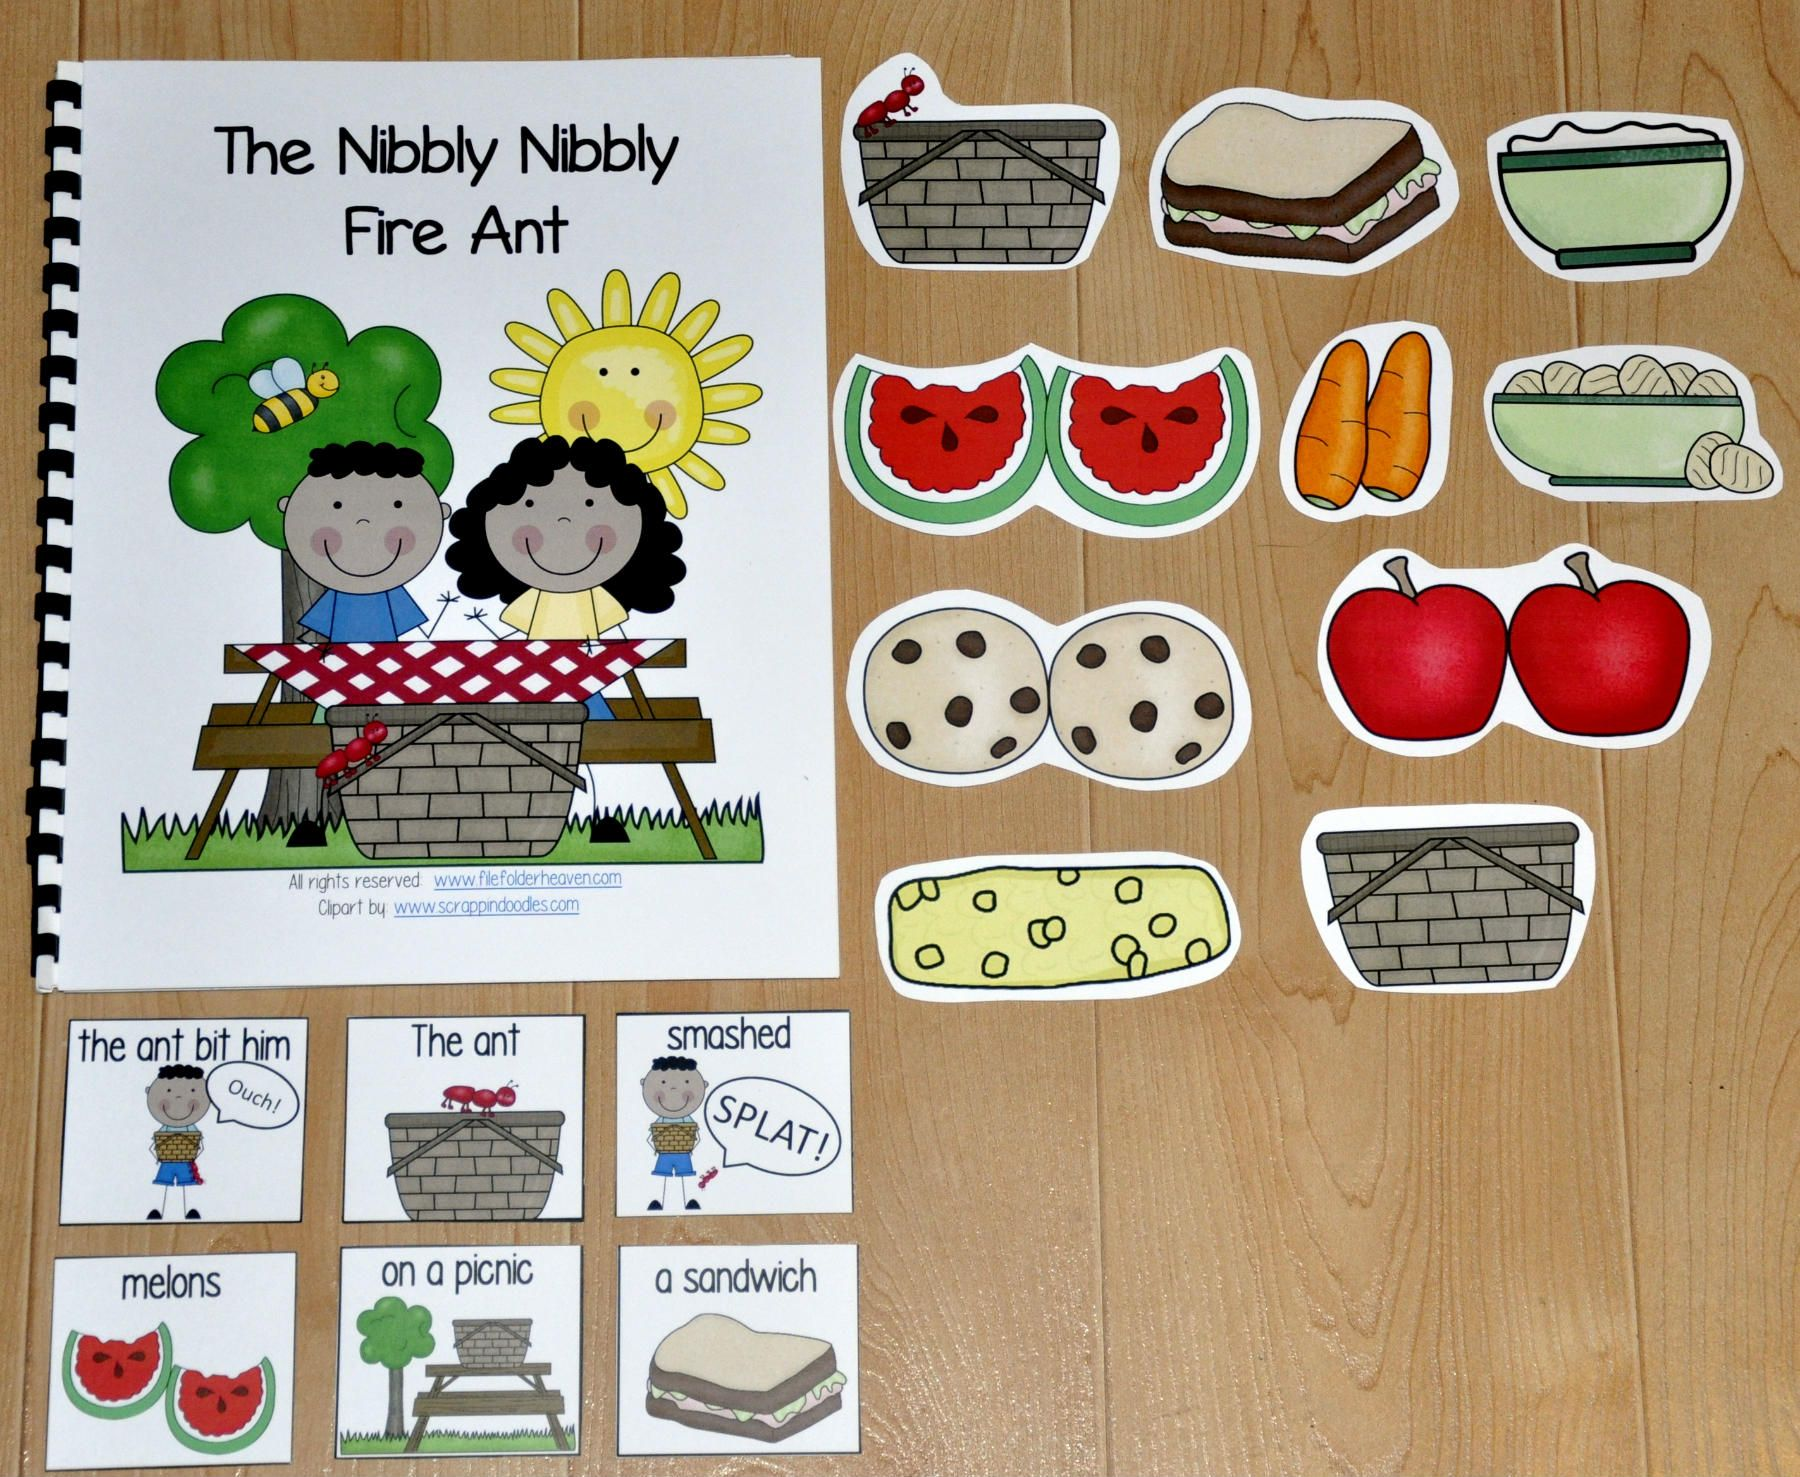 This Picnic Adapted Book The Nibbly Nibbly Fire Ant Is